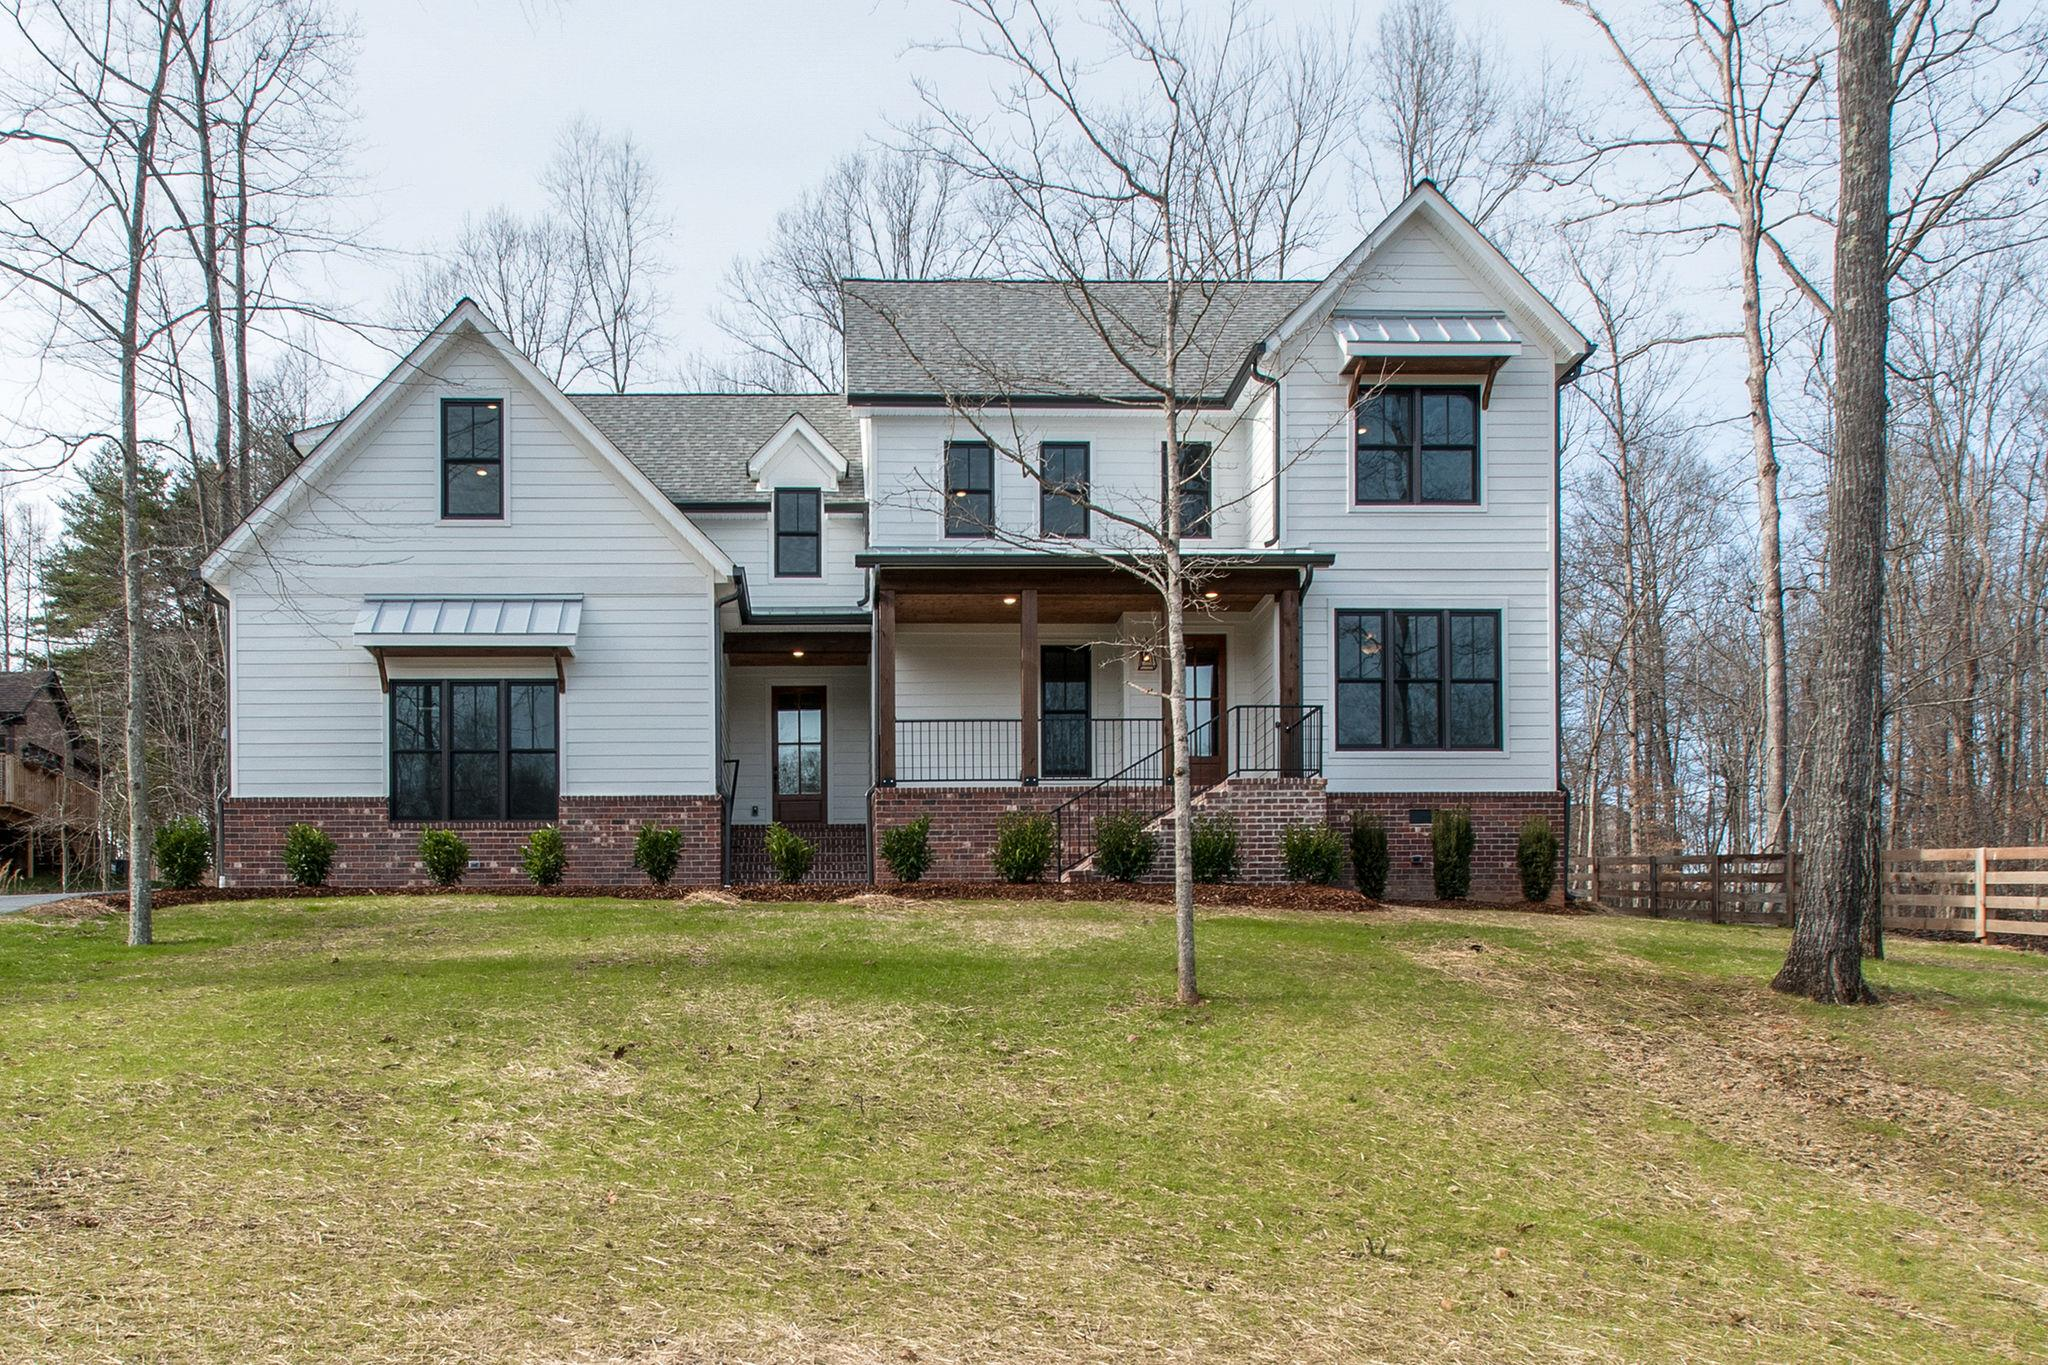 7173 Kyles Creek Dr., Fairview in Williamson County County, TN 37062 Home for Sale